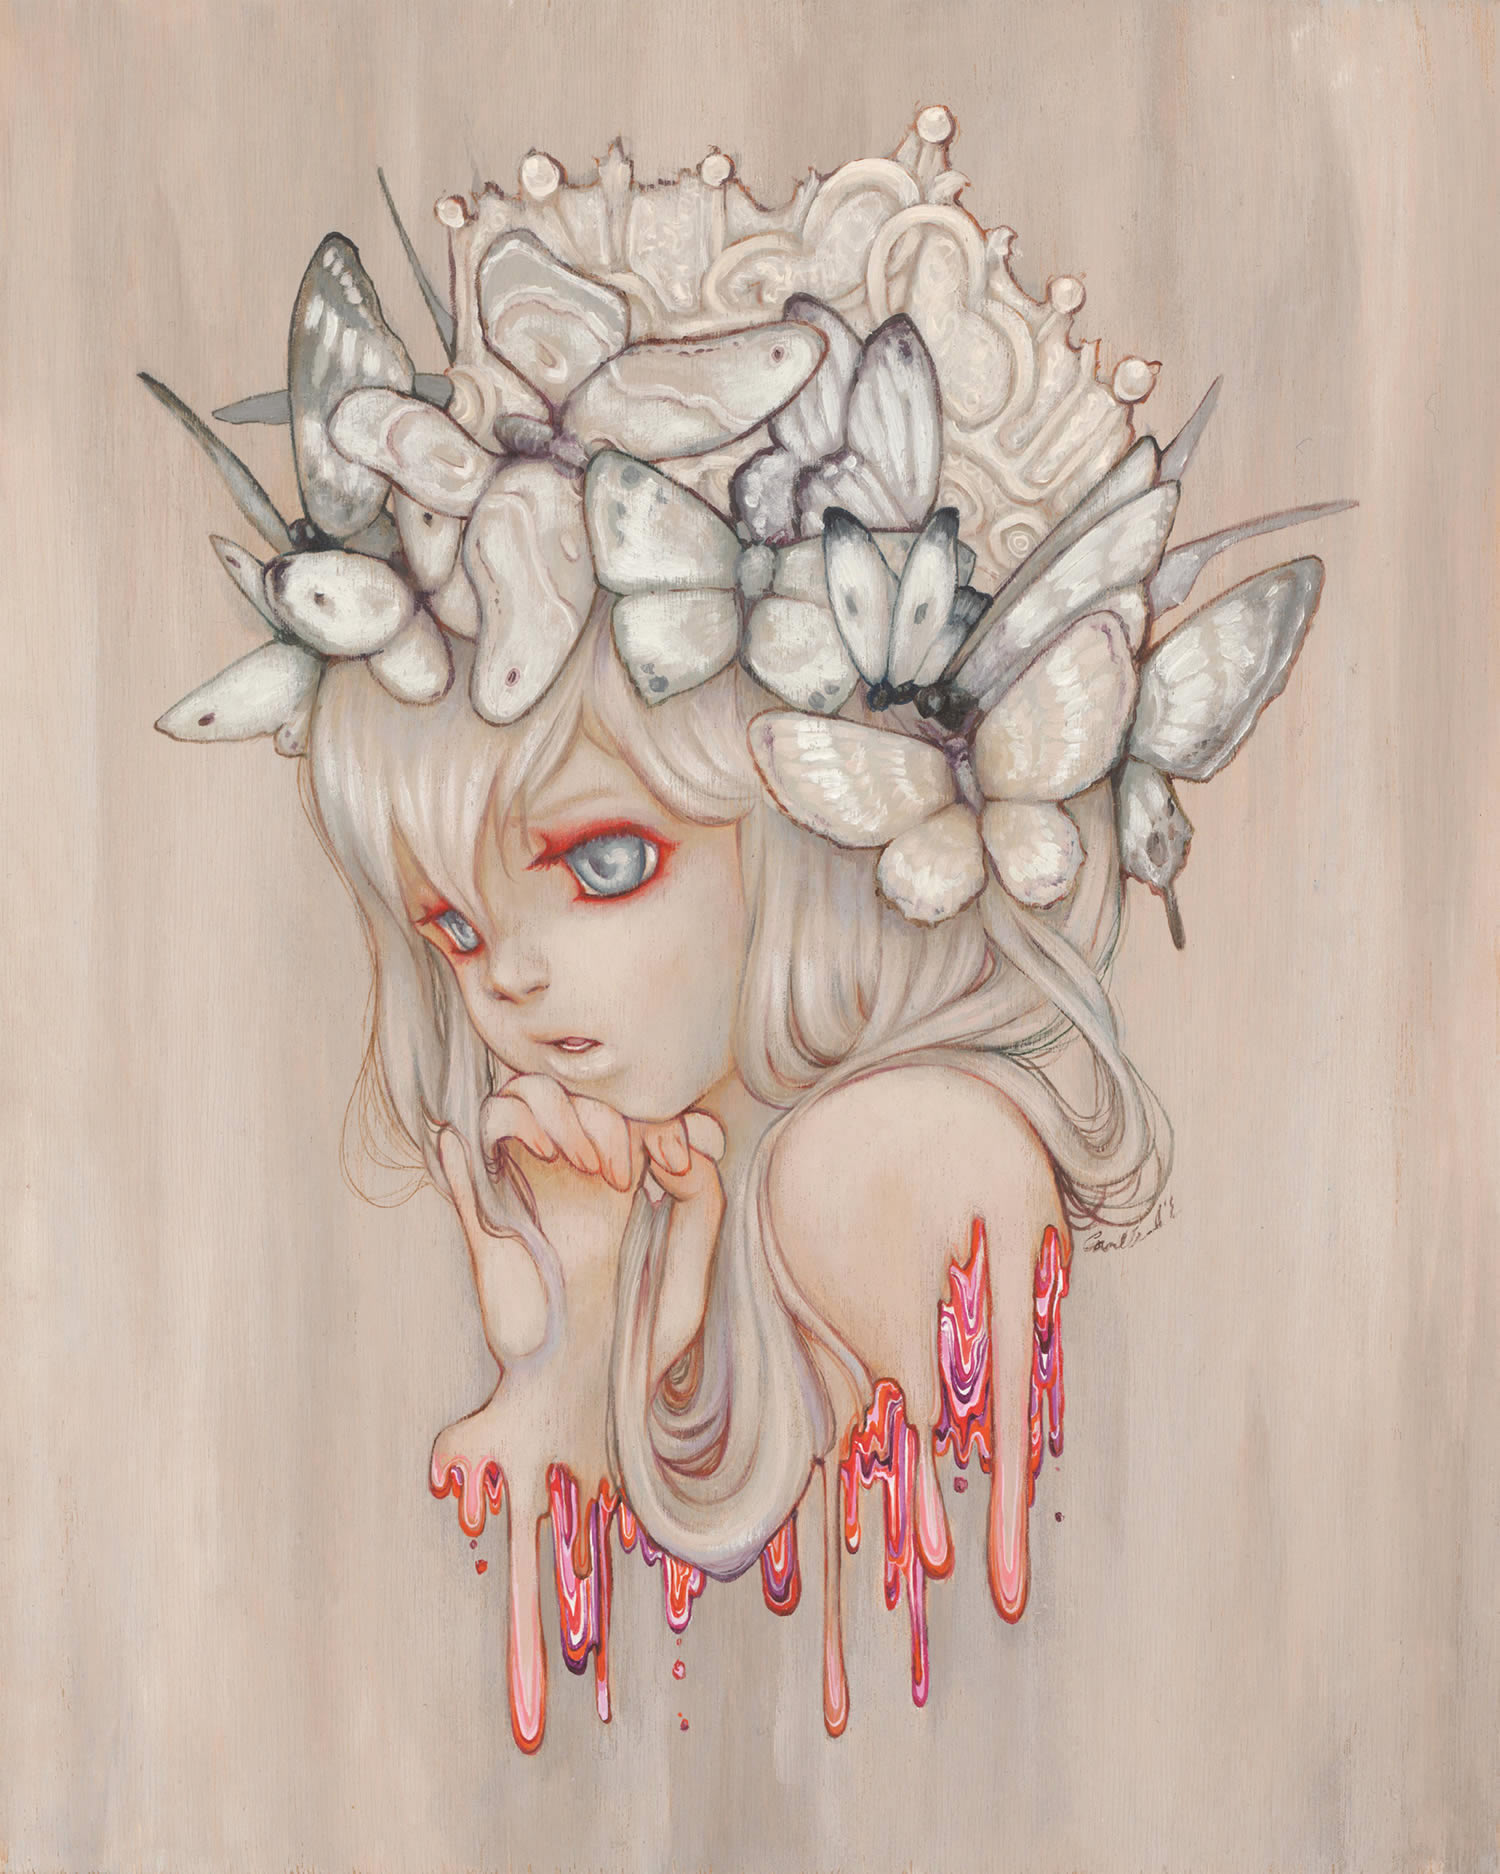 butterfly girl, painting by Camilla d'Errico